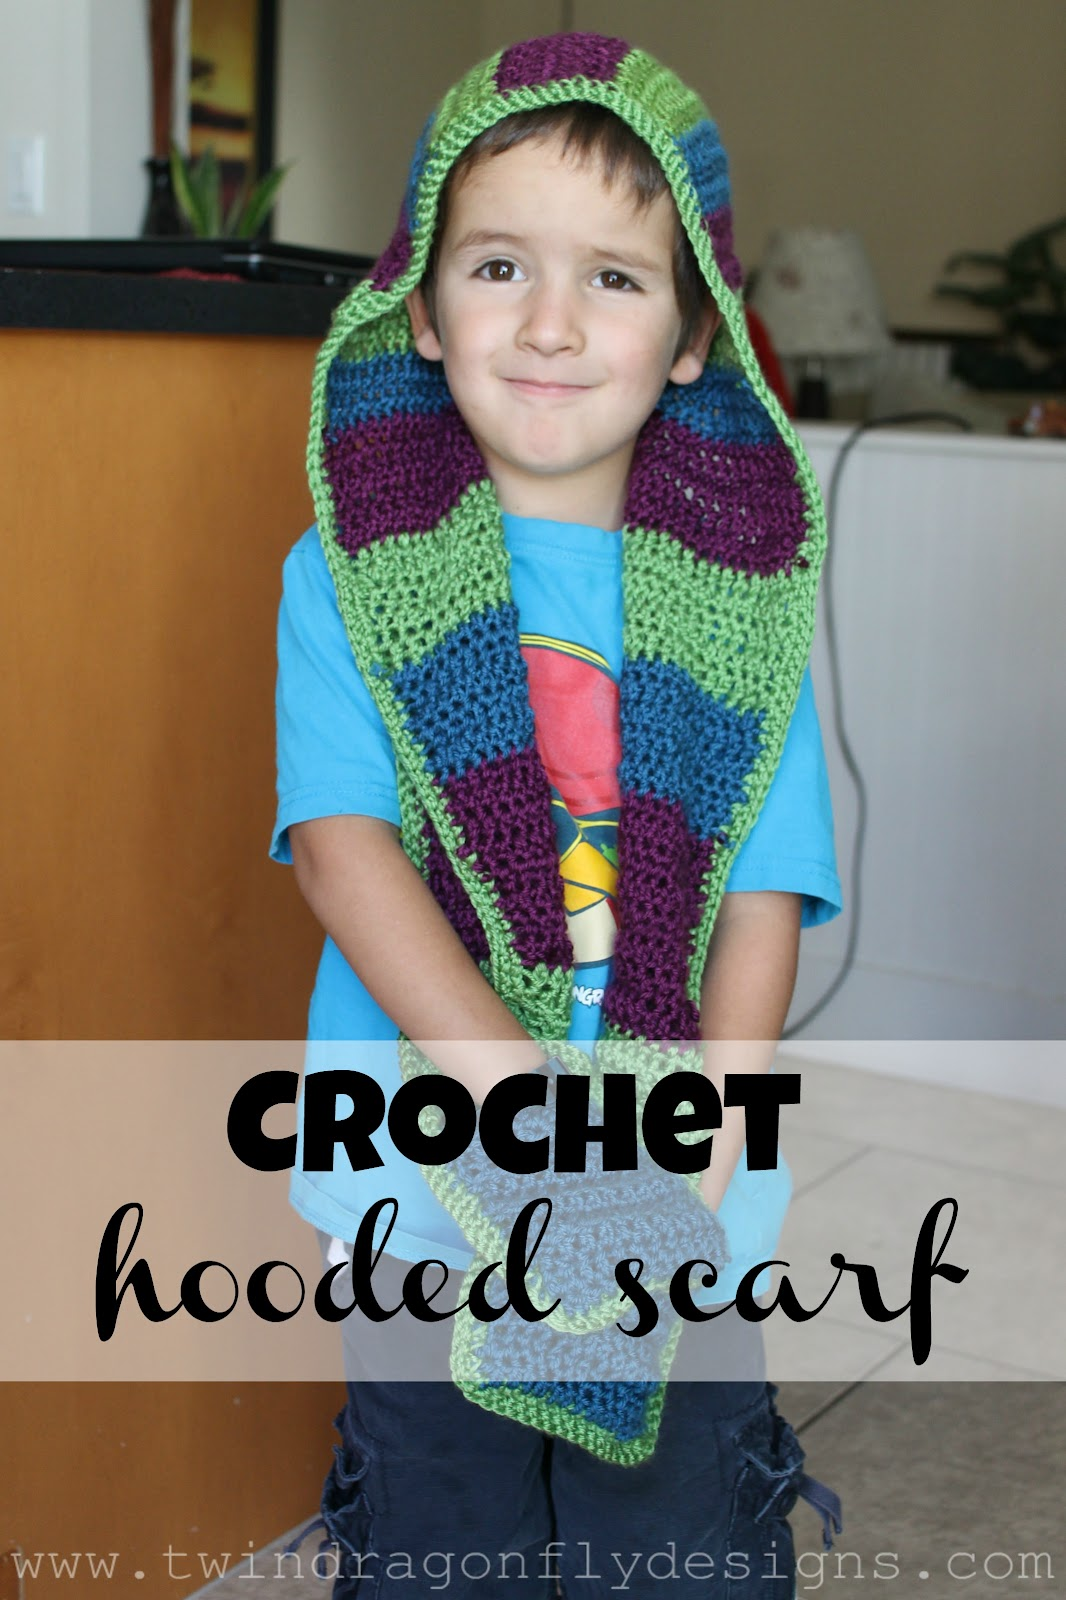 crochethoodedscarftitlejpg Crochet Childrens Scarf Crochet Childrens Scarf